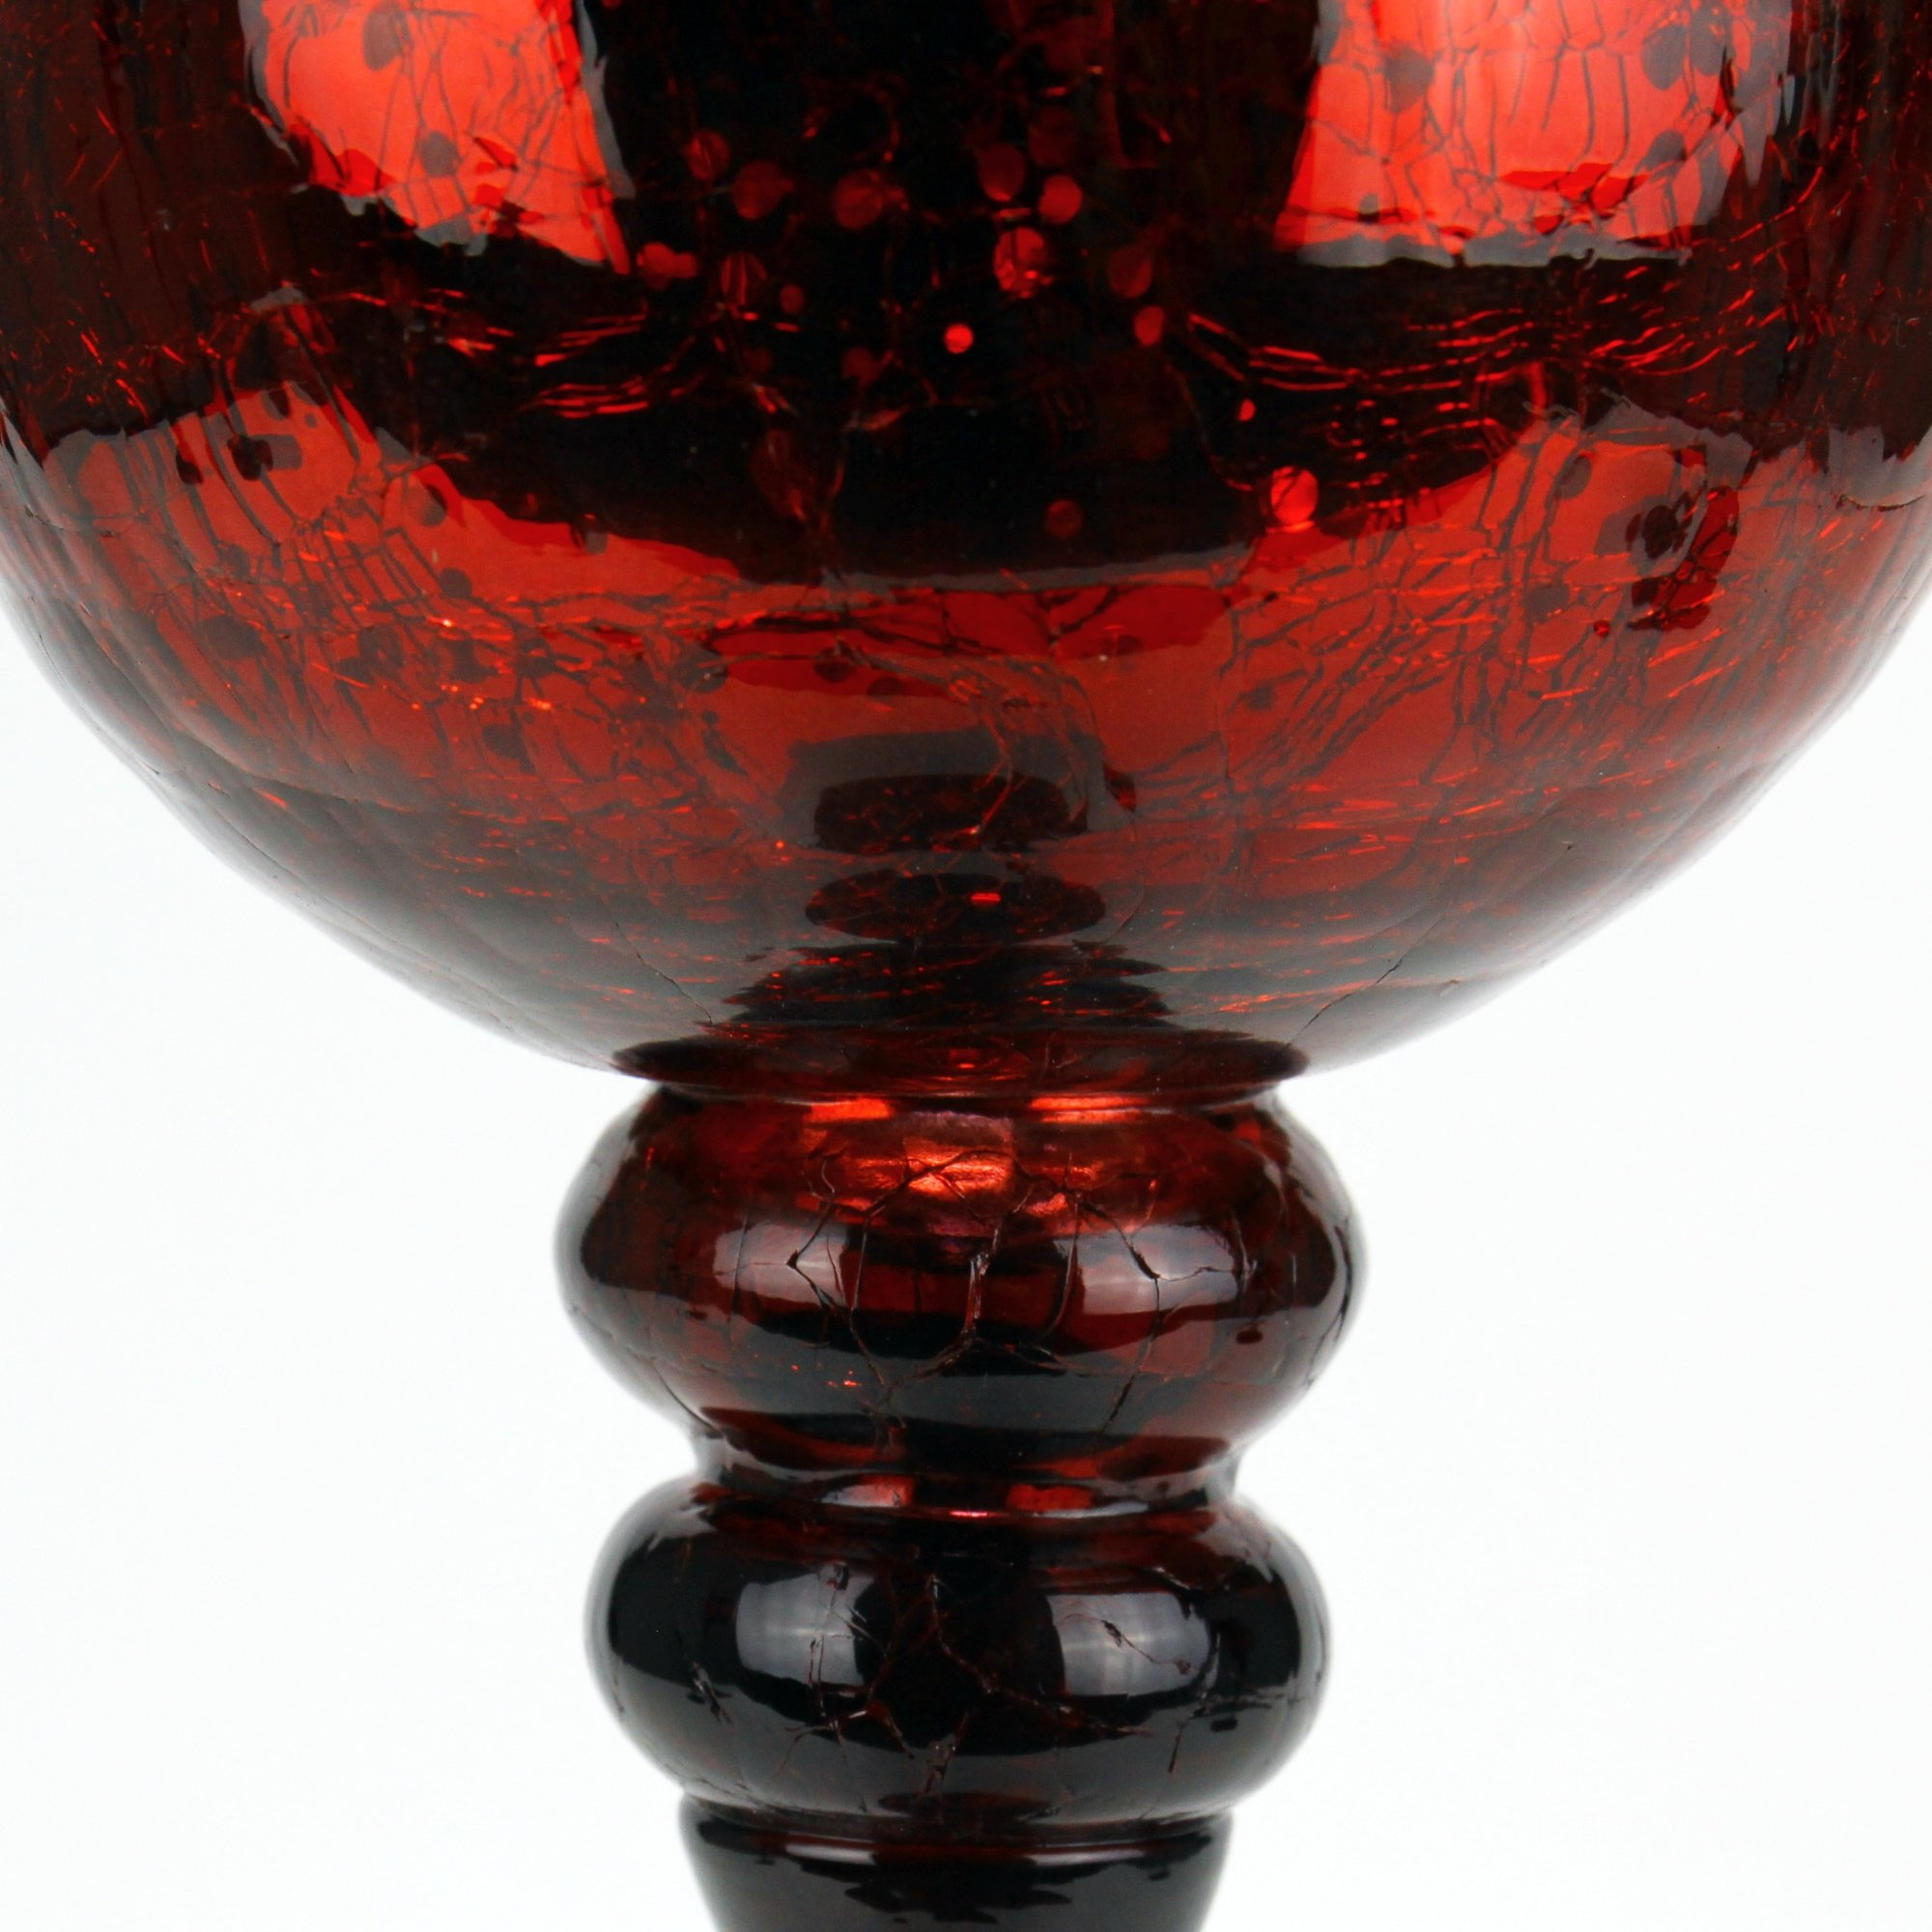 CYS EXCEL Mercury Red Crackle Glass Candle Holder, Long Stem Candle Holder, Set of 3 (12'', 14'', 16'') (Red Crackle) by CYS EXCEL (Image #3)